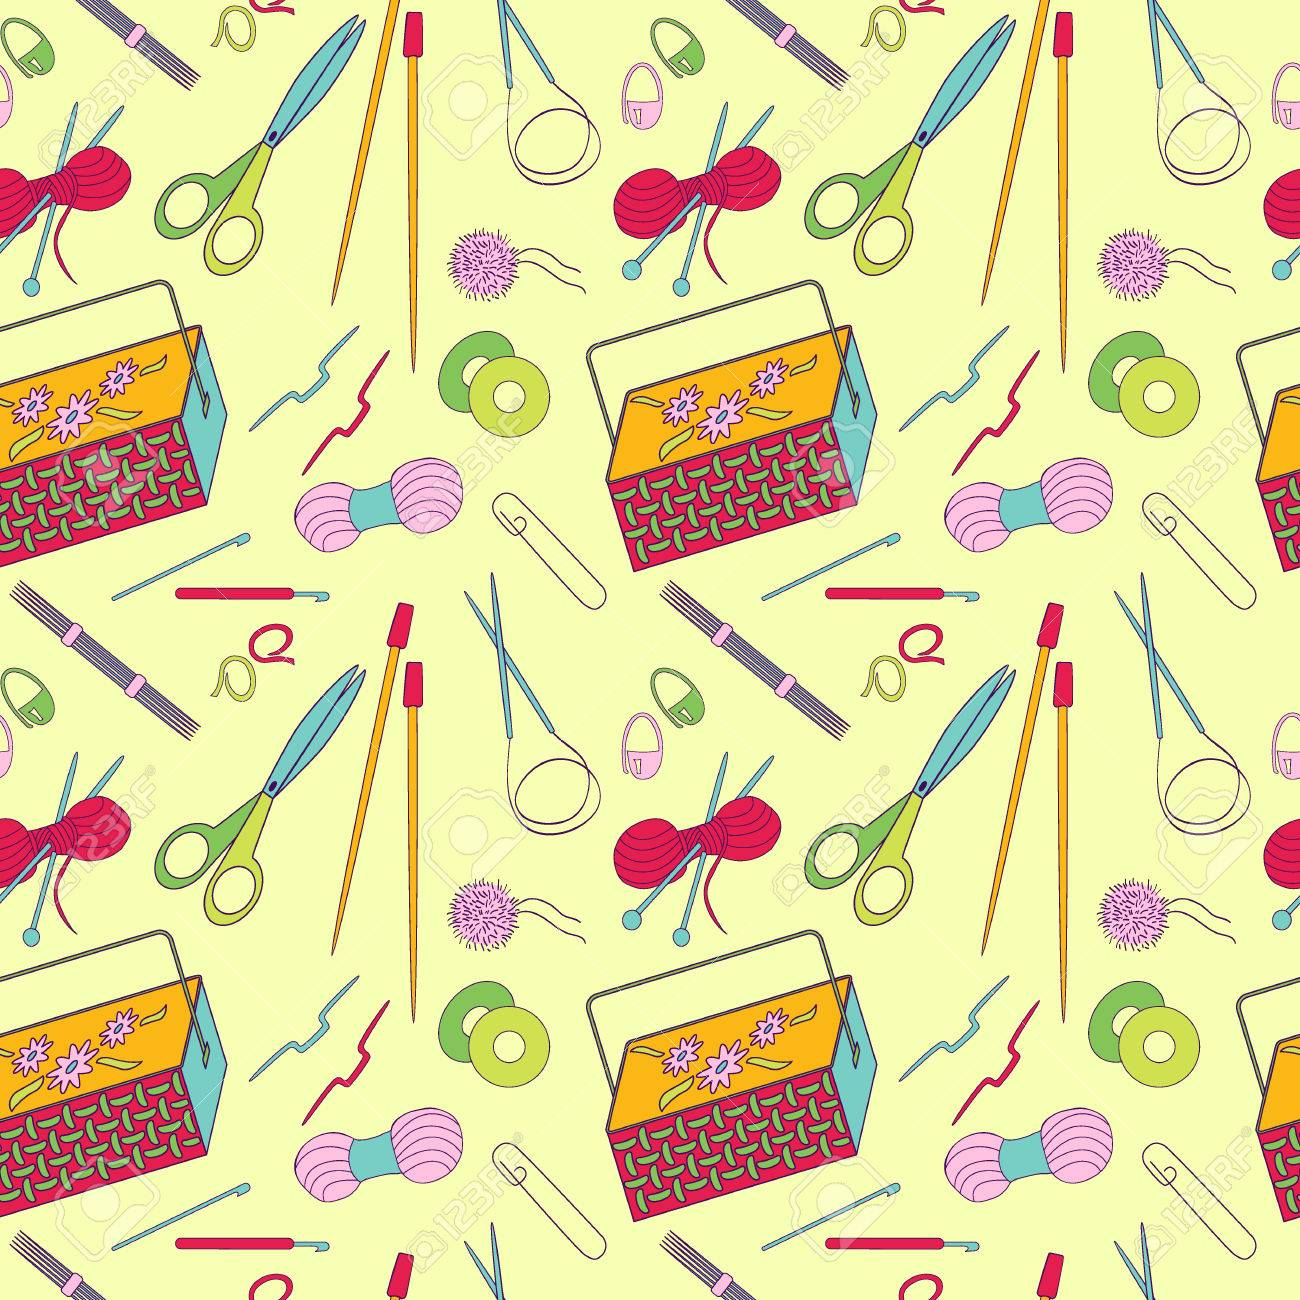 Seamless Pattern Of Knitting And Crafts Icons Knitting Needles Royalty Free Cliparts Vectors And Stock Illustration Image 59770977